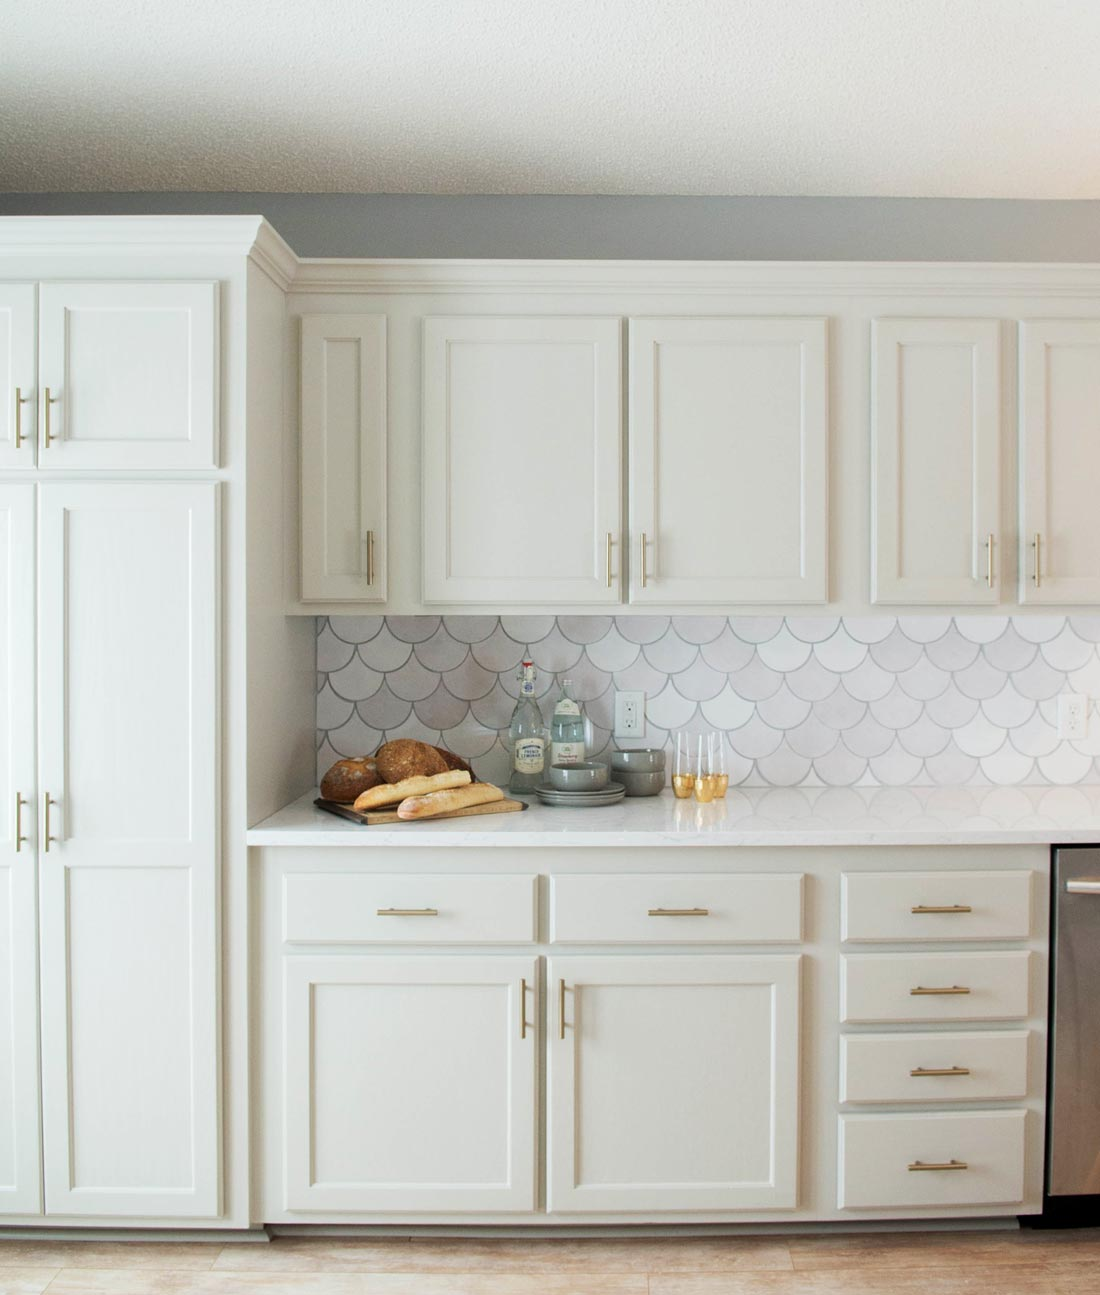 Before And After White Moroccan Fish Scales Kitchen